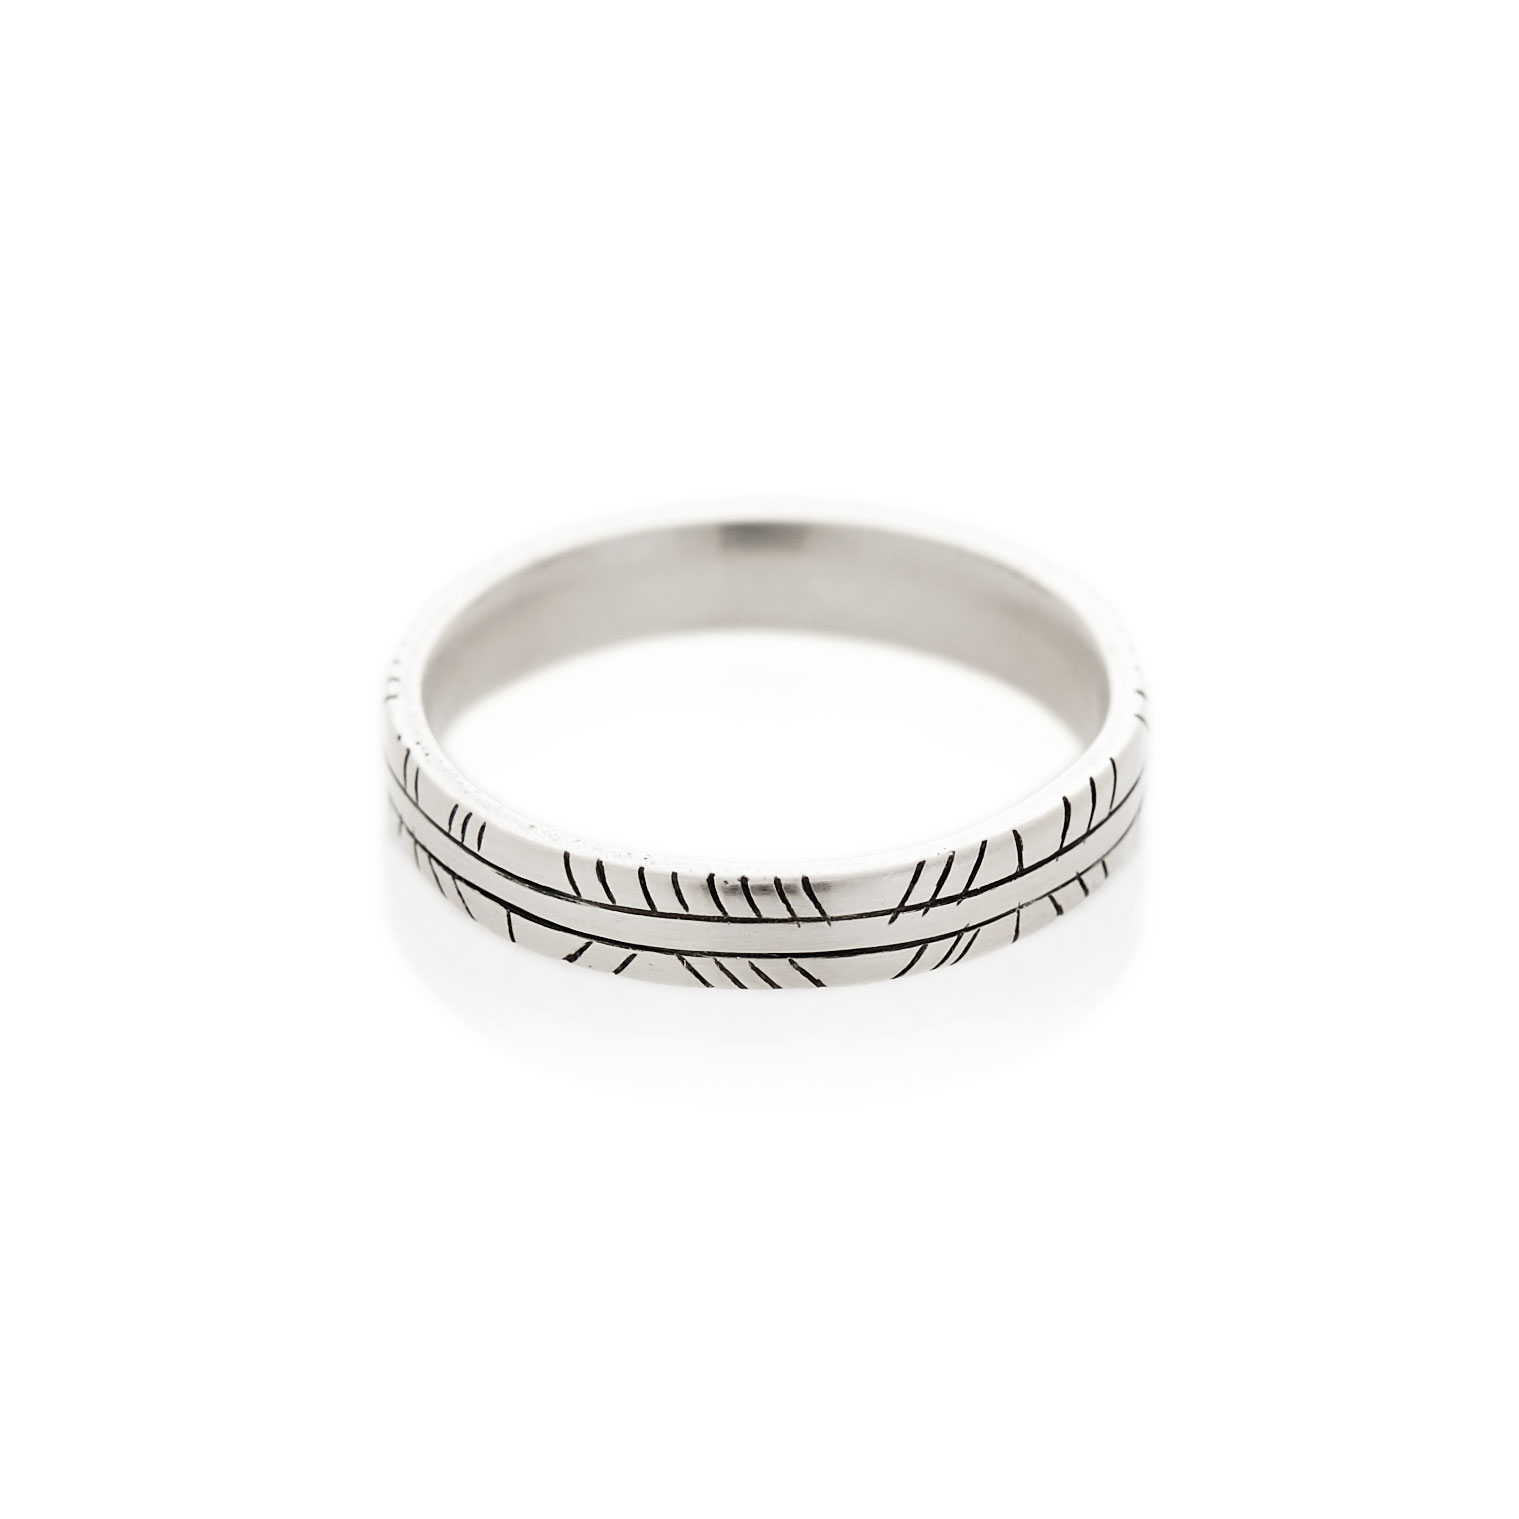 Half diagonal striped men's band